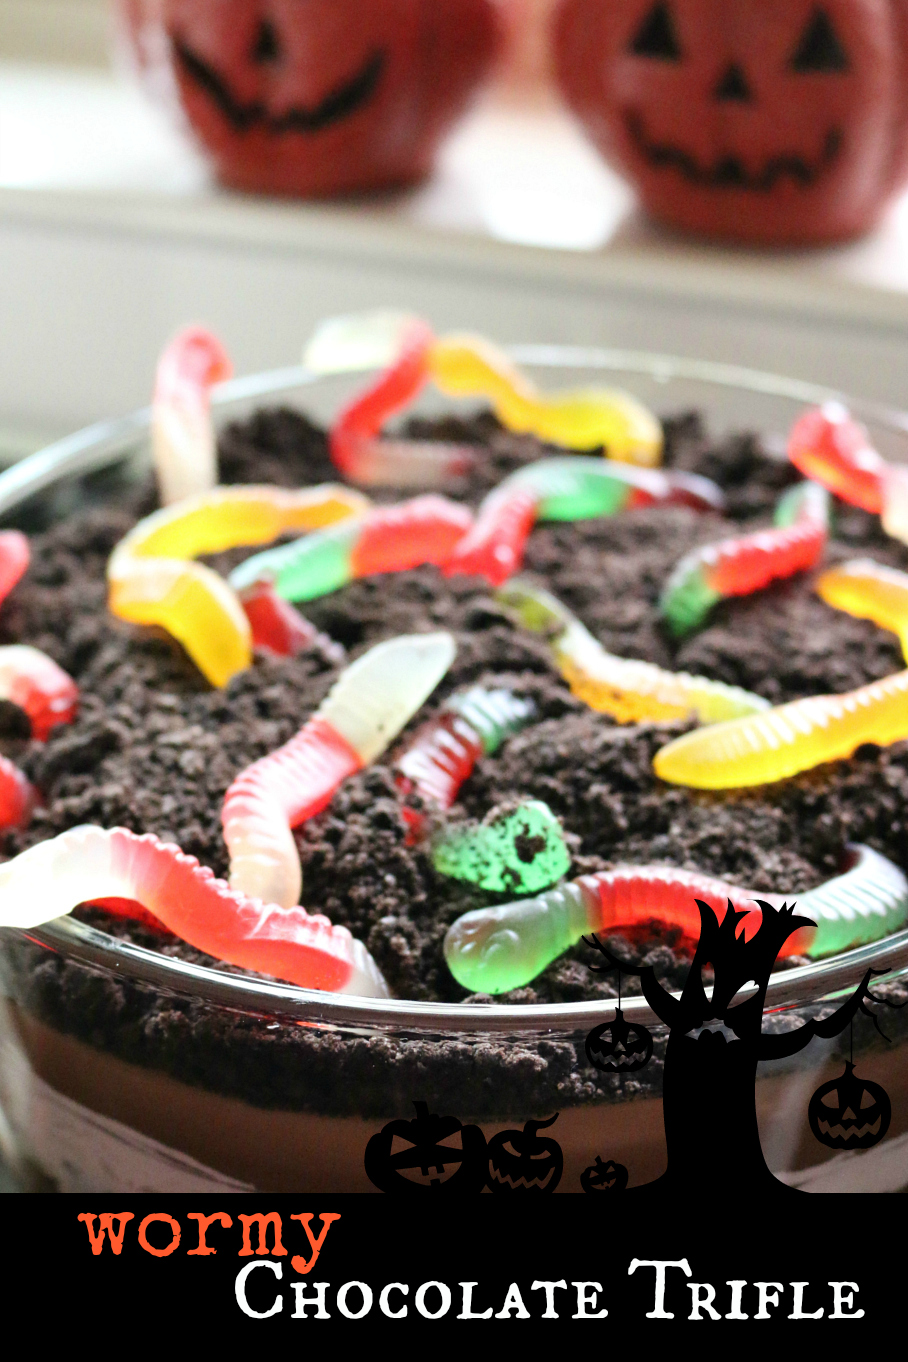 Wormy Halloween Chocolate Pudding Trifle Recipe CeceliasGoodStuff.com | Good Food for Good People